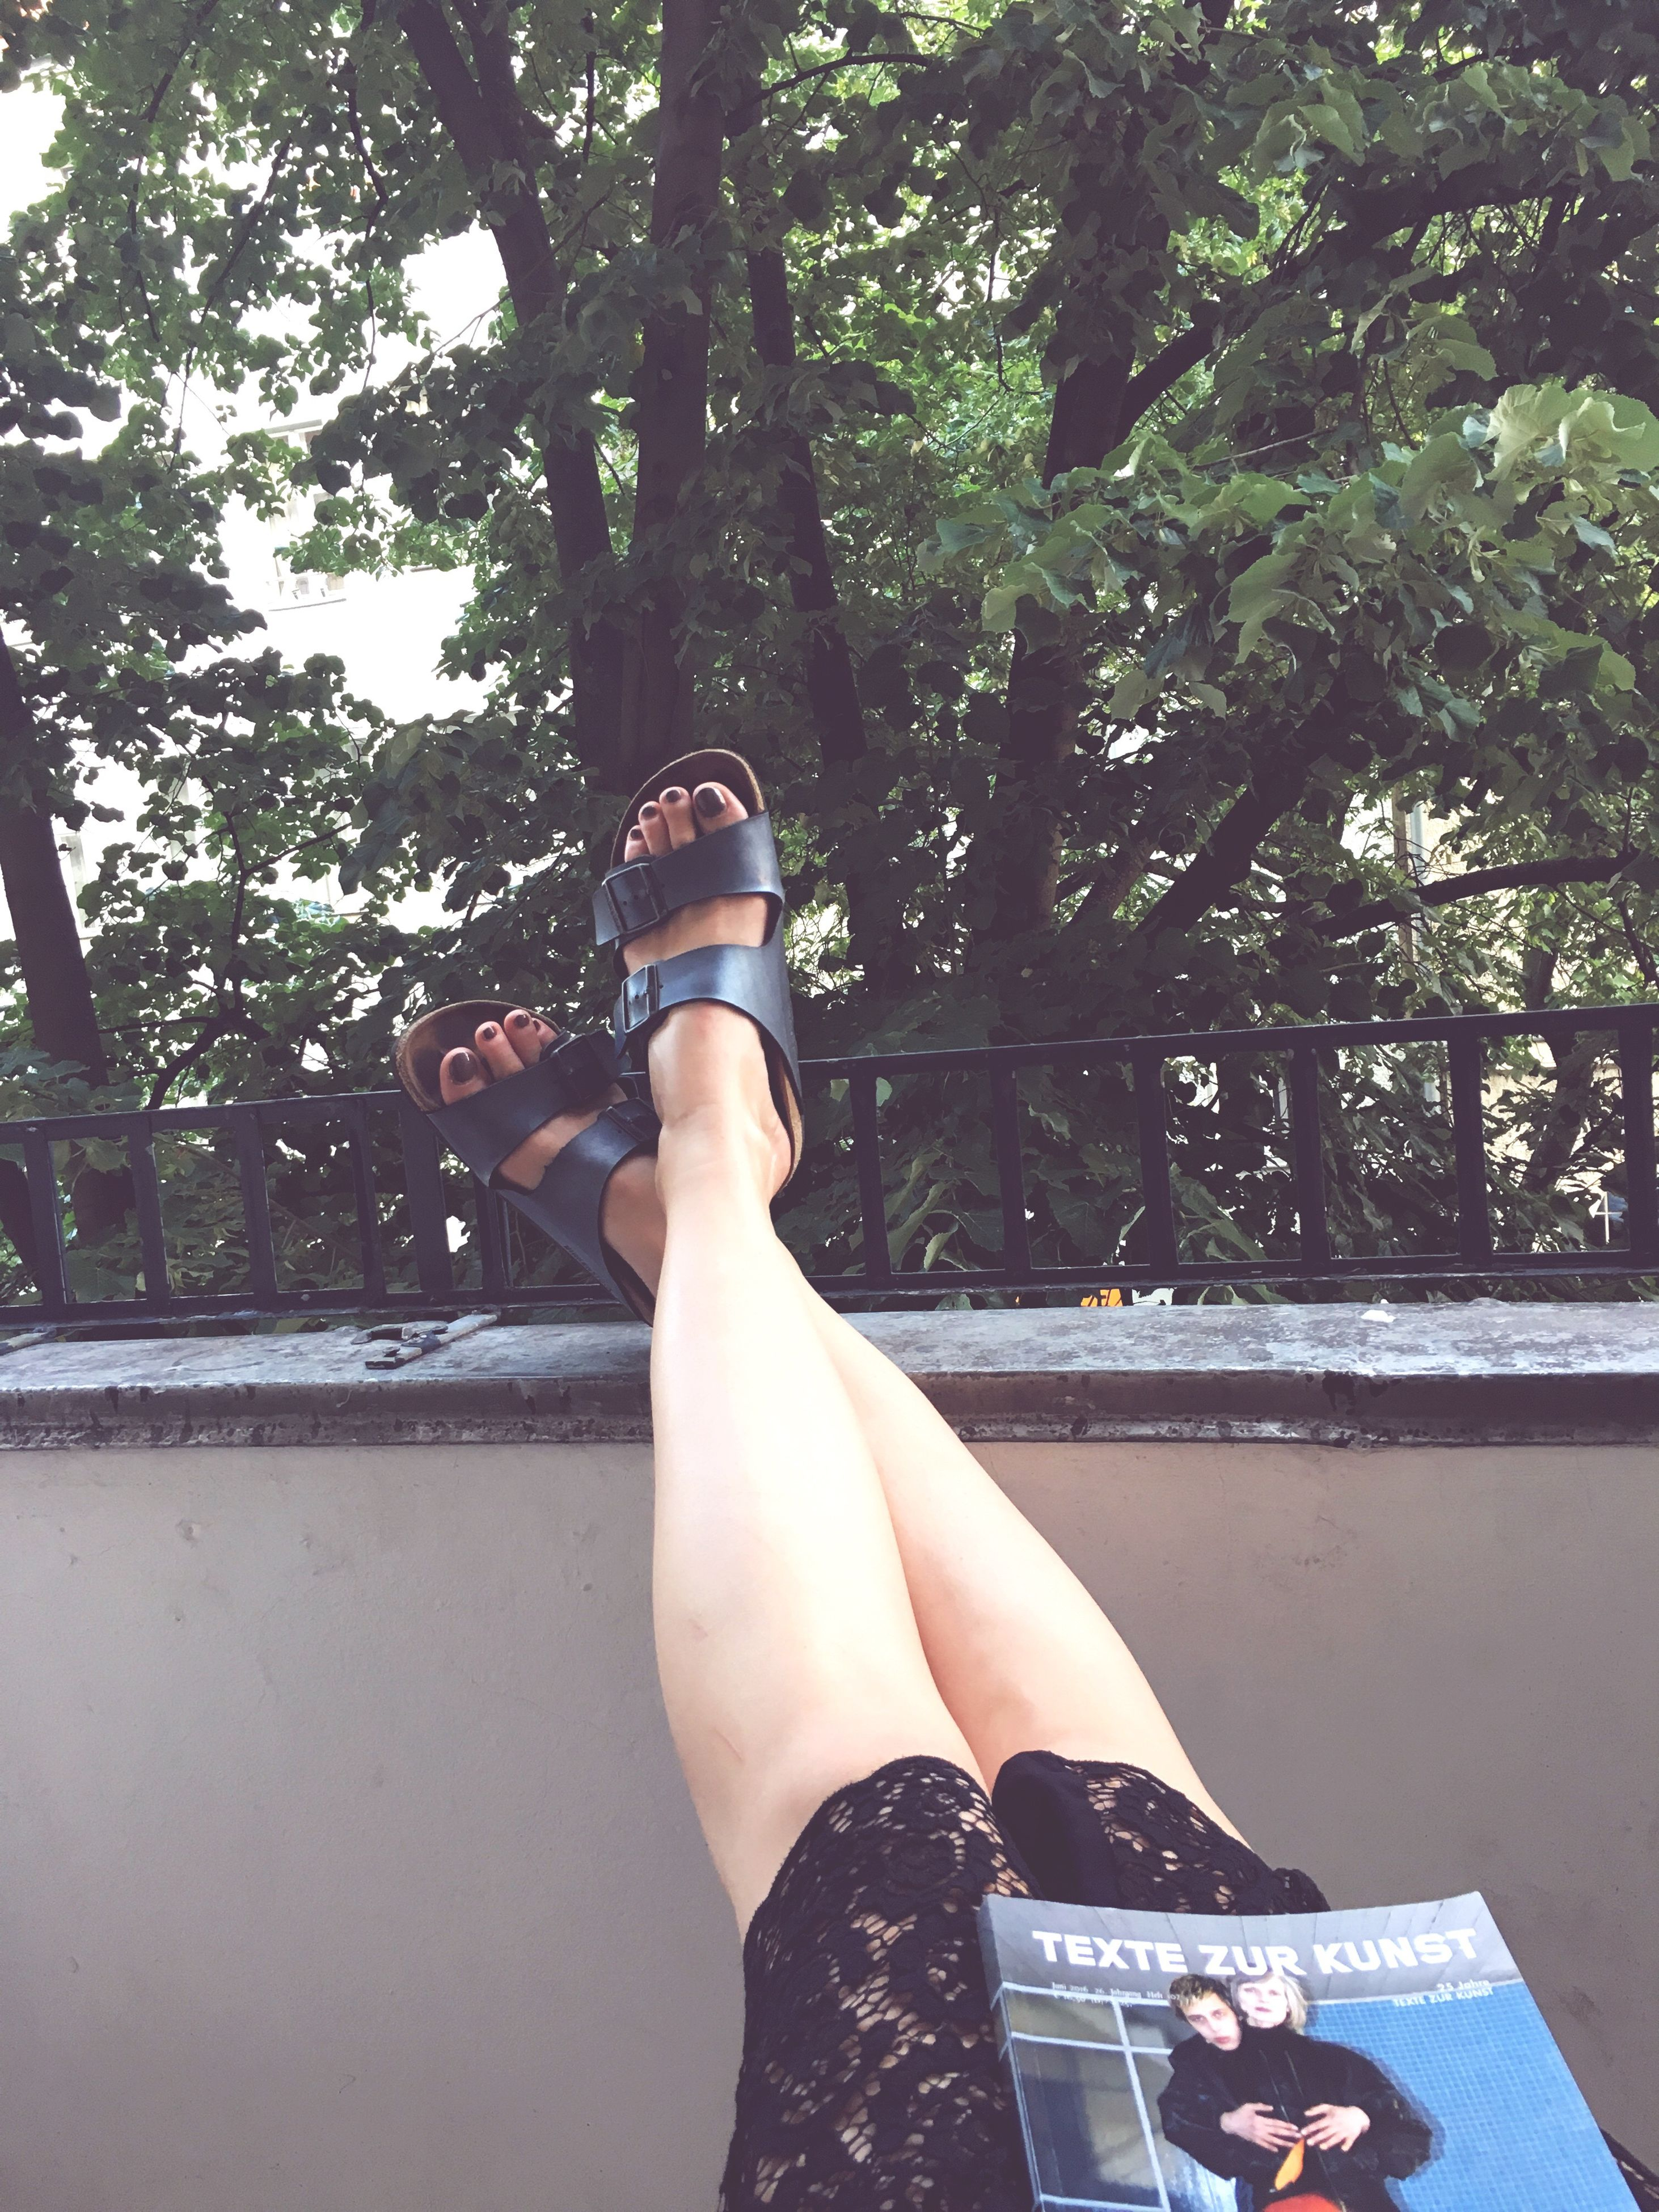 lifestyles, low section, personal perspective, person, tree, leisure activity, relaxation, standing, shoe, legs crossed at ankle, sitting, day, sunlight, outdoors, part of, human foot